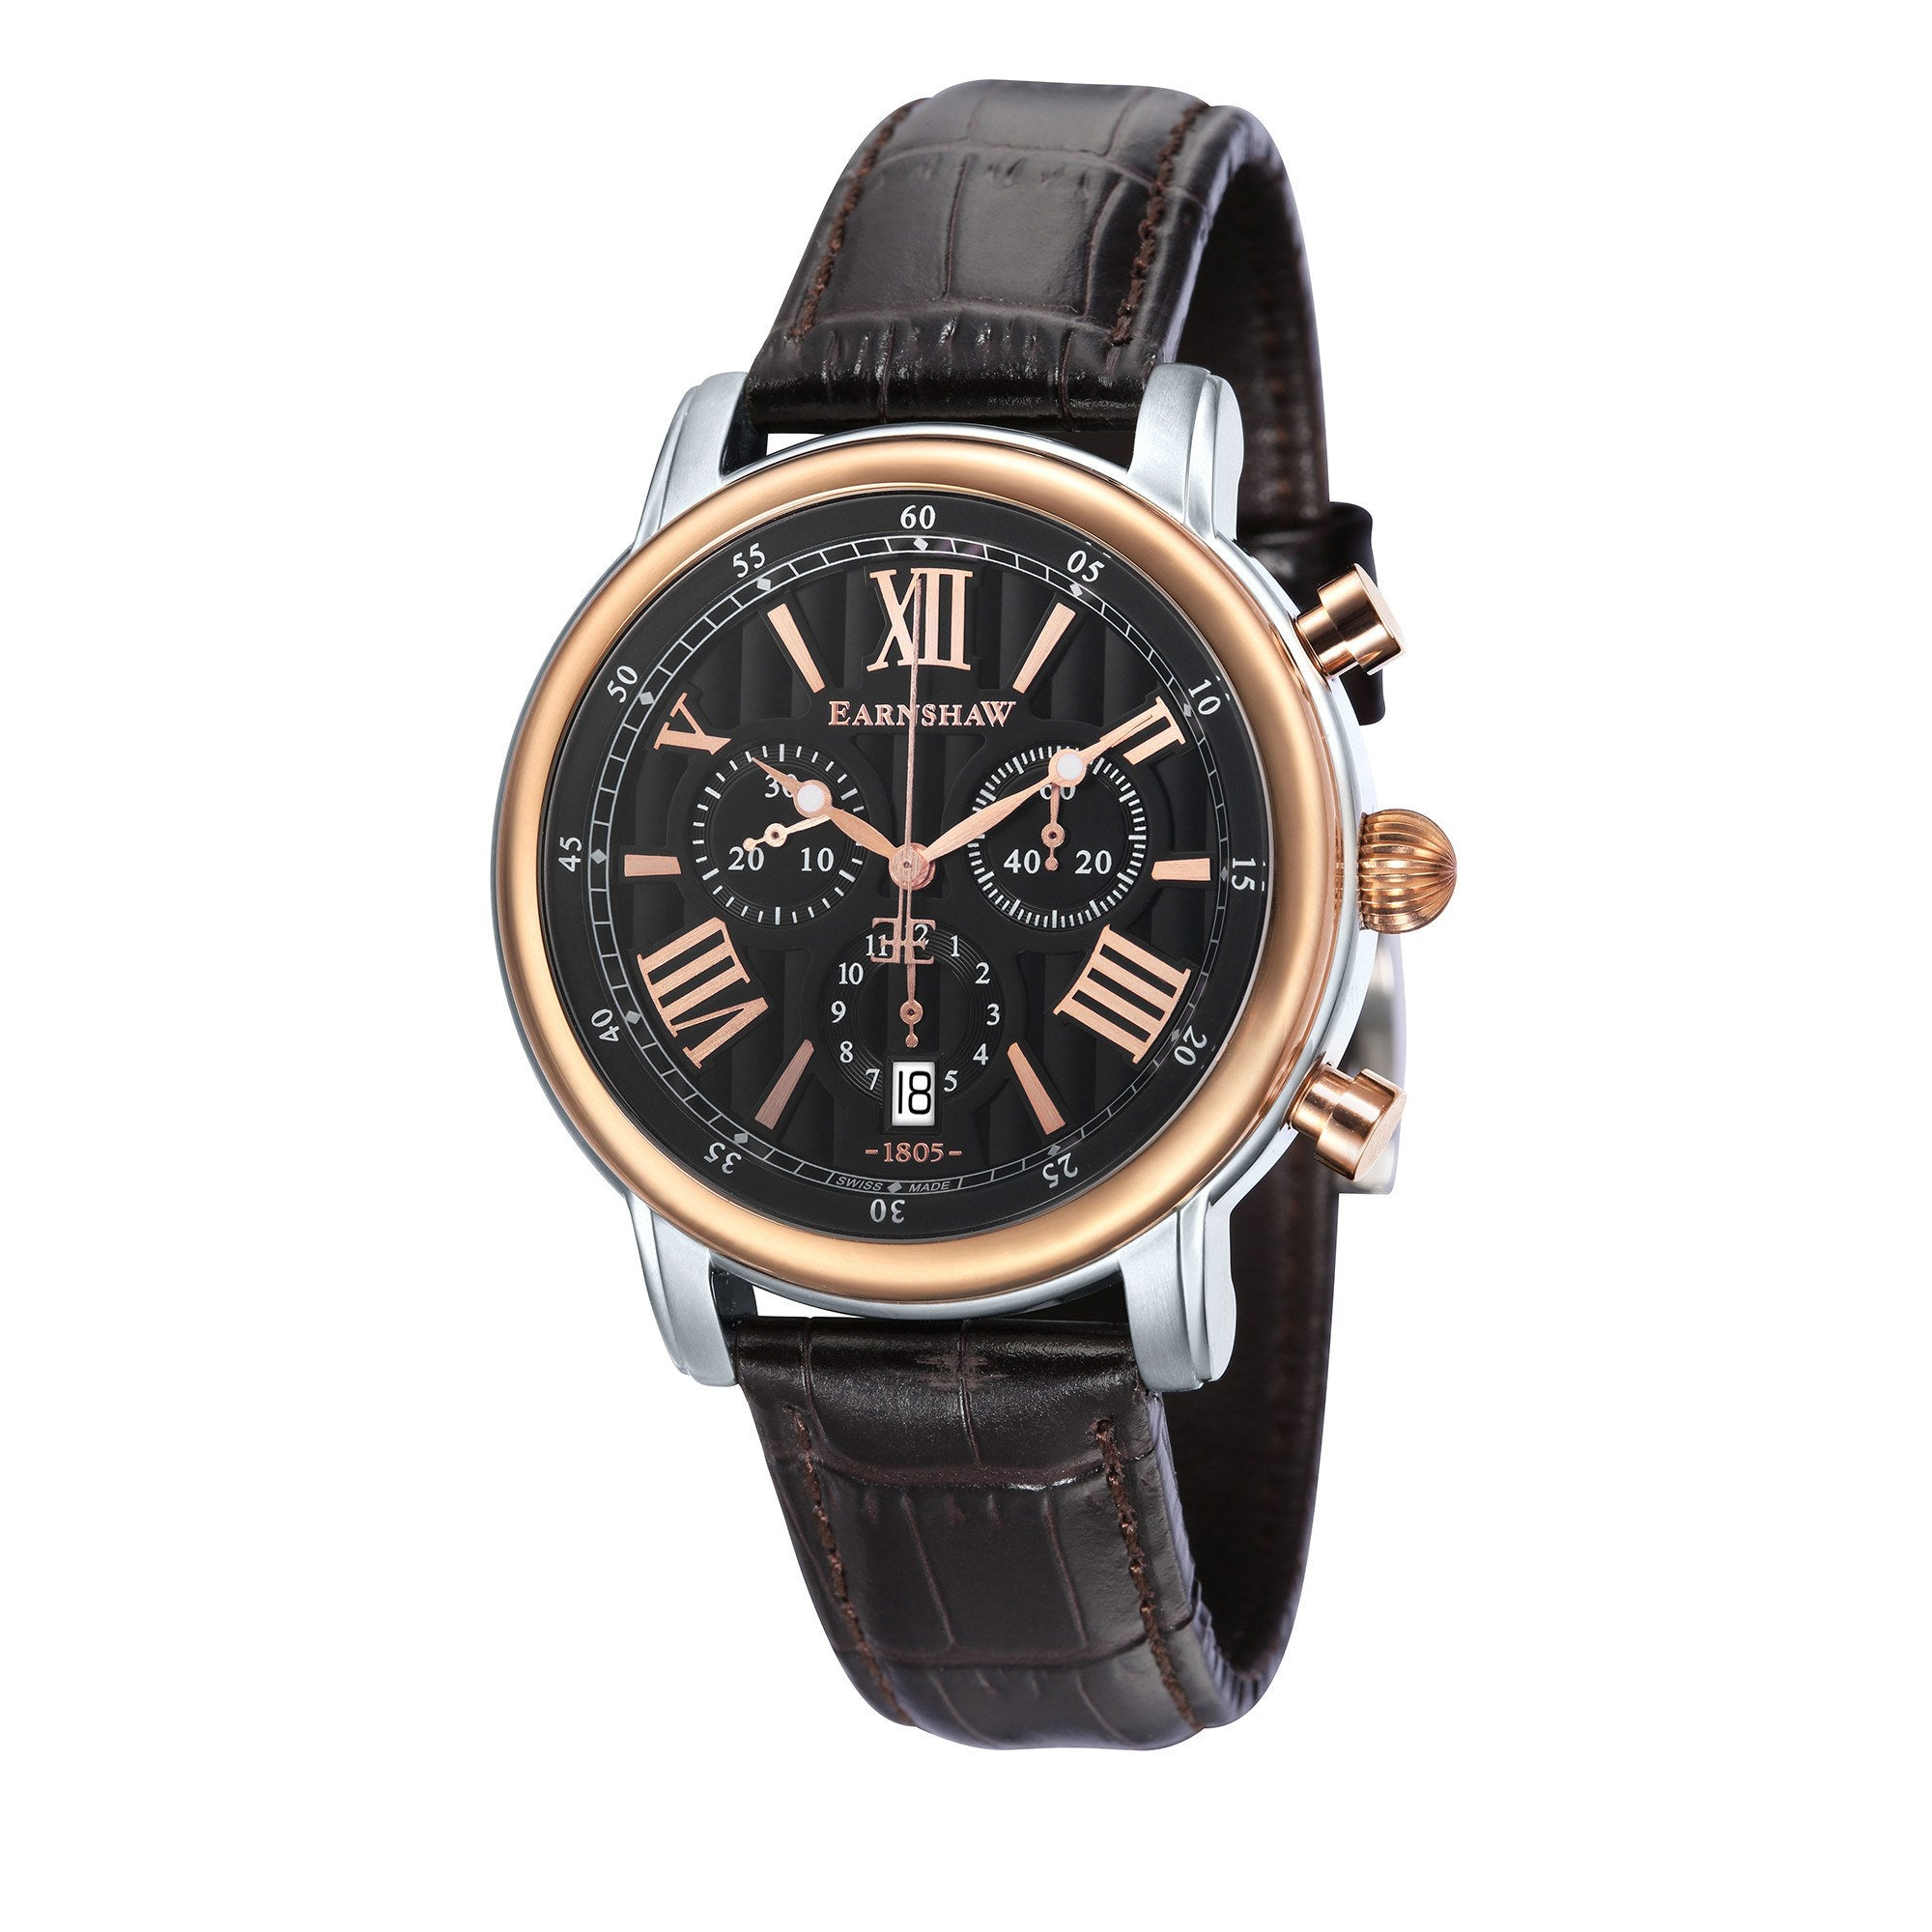 Thomas Earnshaw THOMAS EARNSHAW SWISS MADE Longcase 43 Quartz Chronograph Watch With Dark Brown Genuine Leather Strap ES-0016-0C